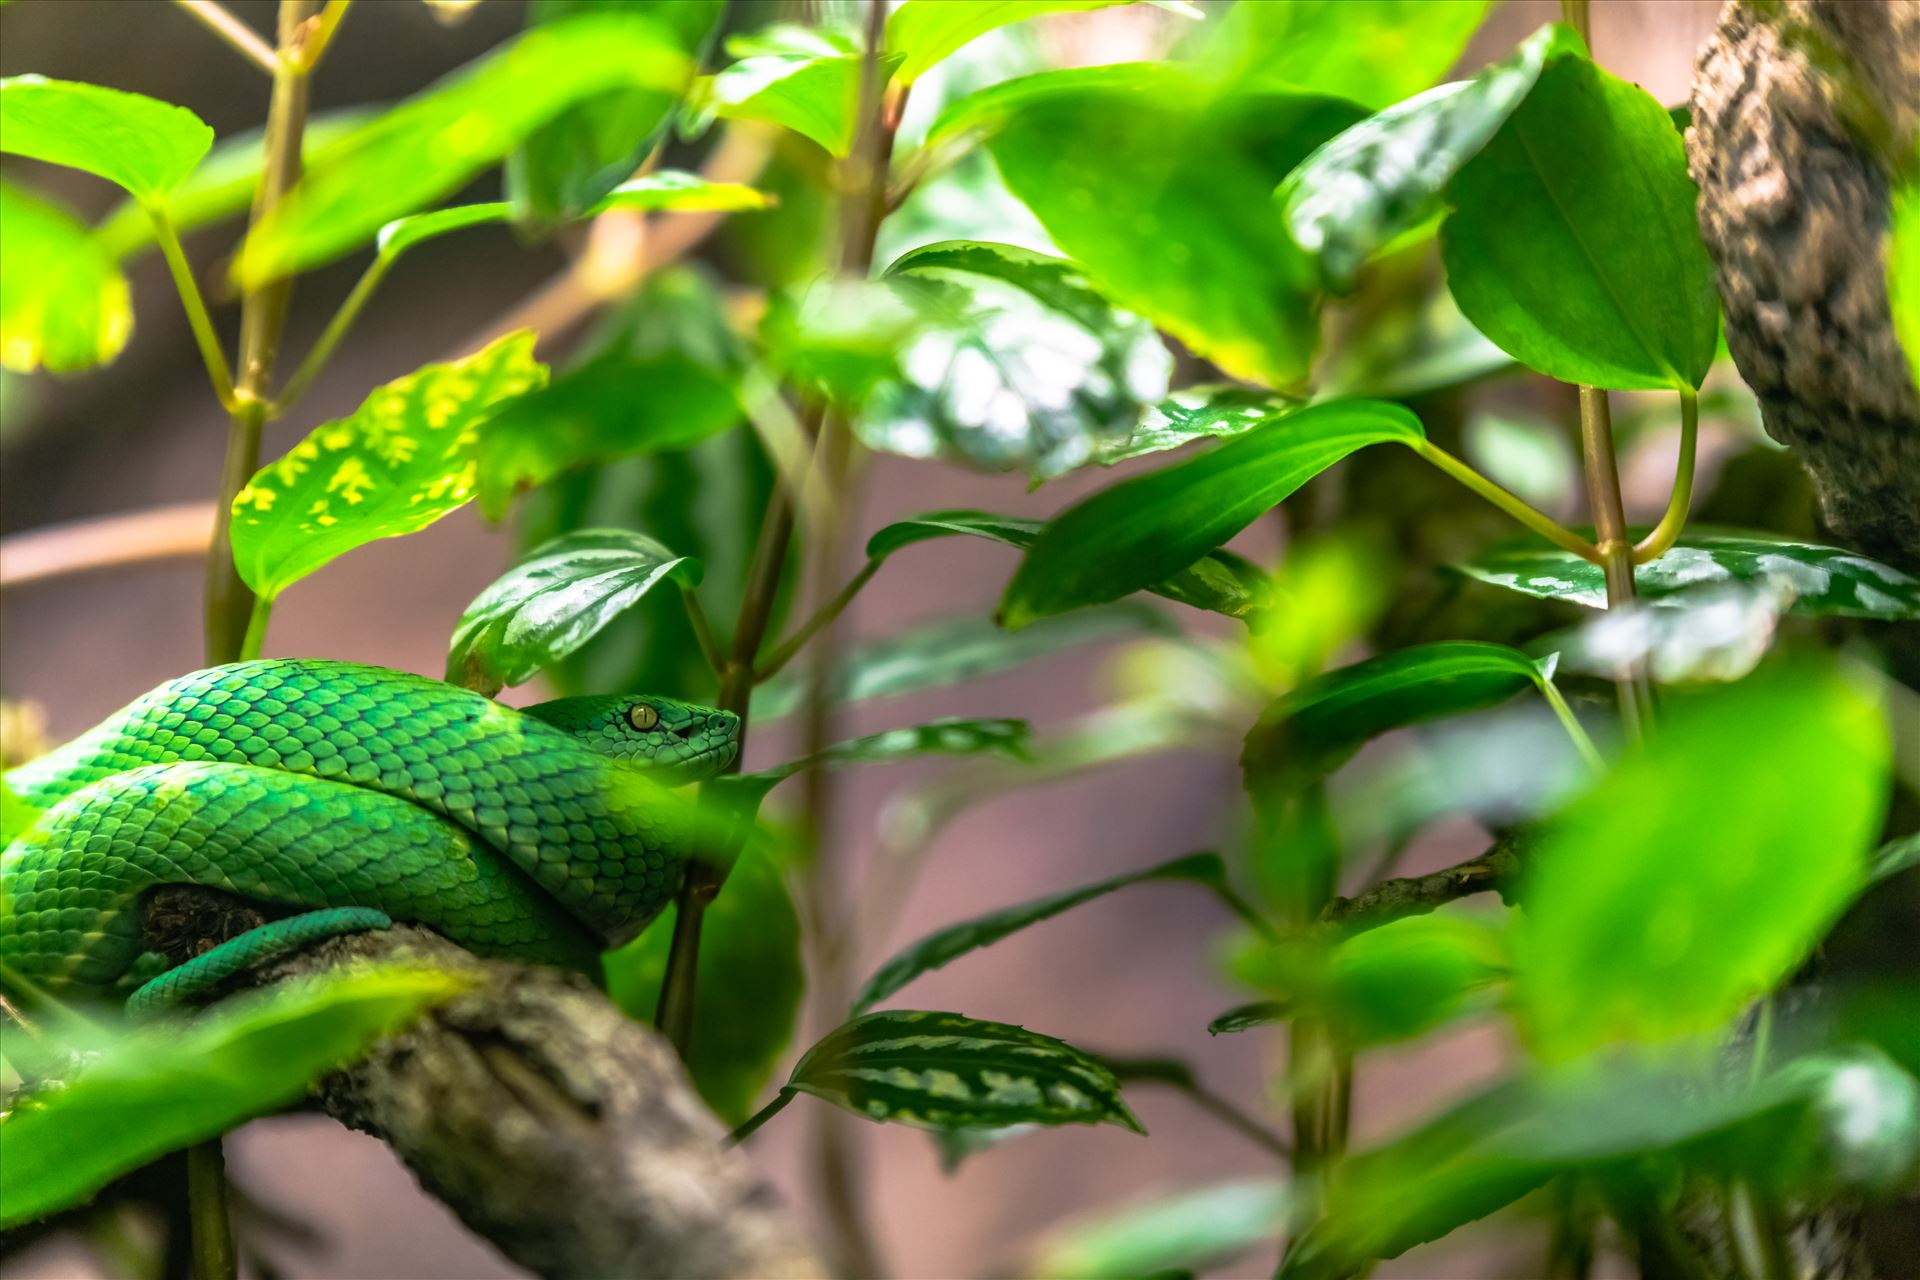 side striped pit viper.jpg Side striped pit viper wrapped around small branch of tree by Terry Kelly Photography